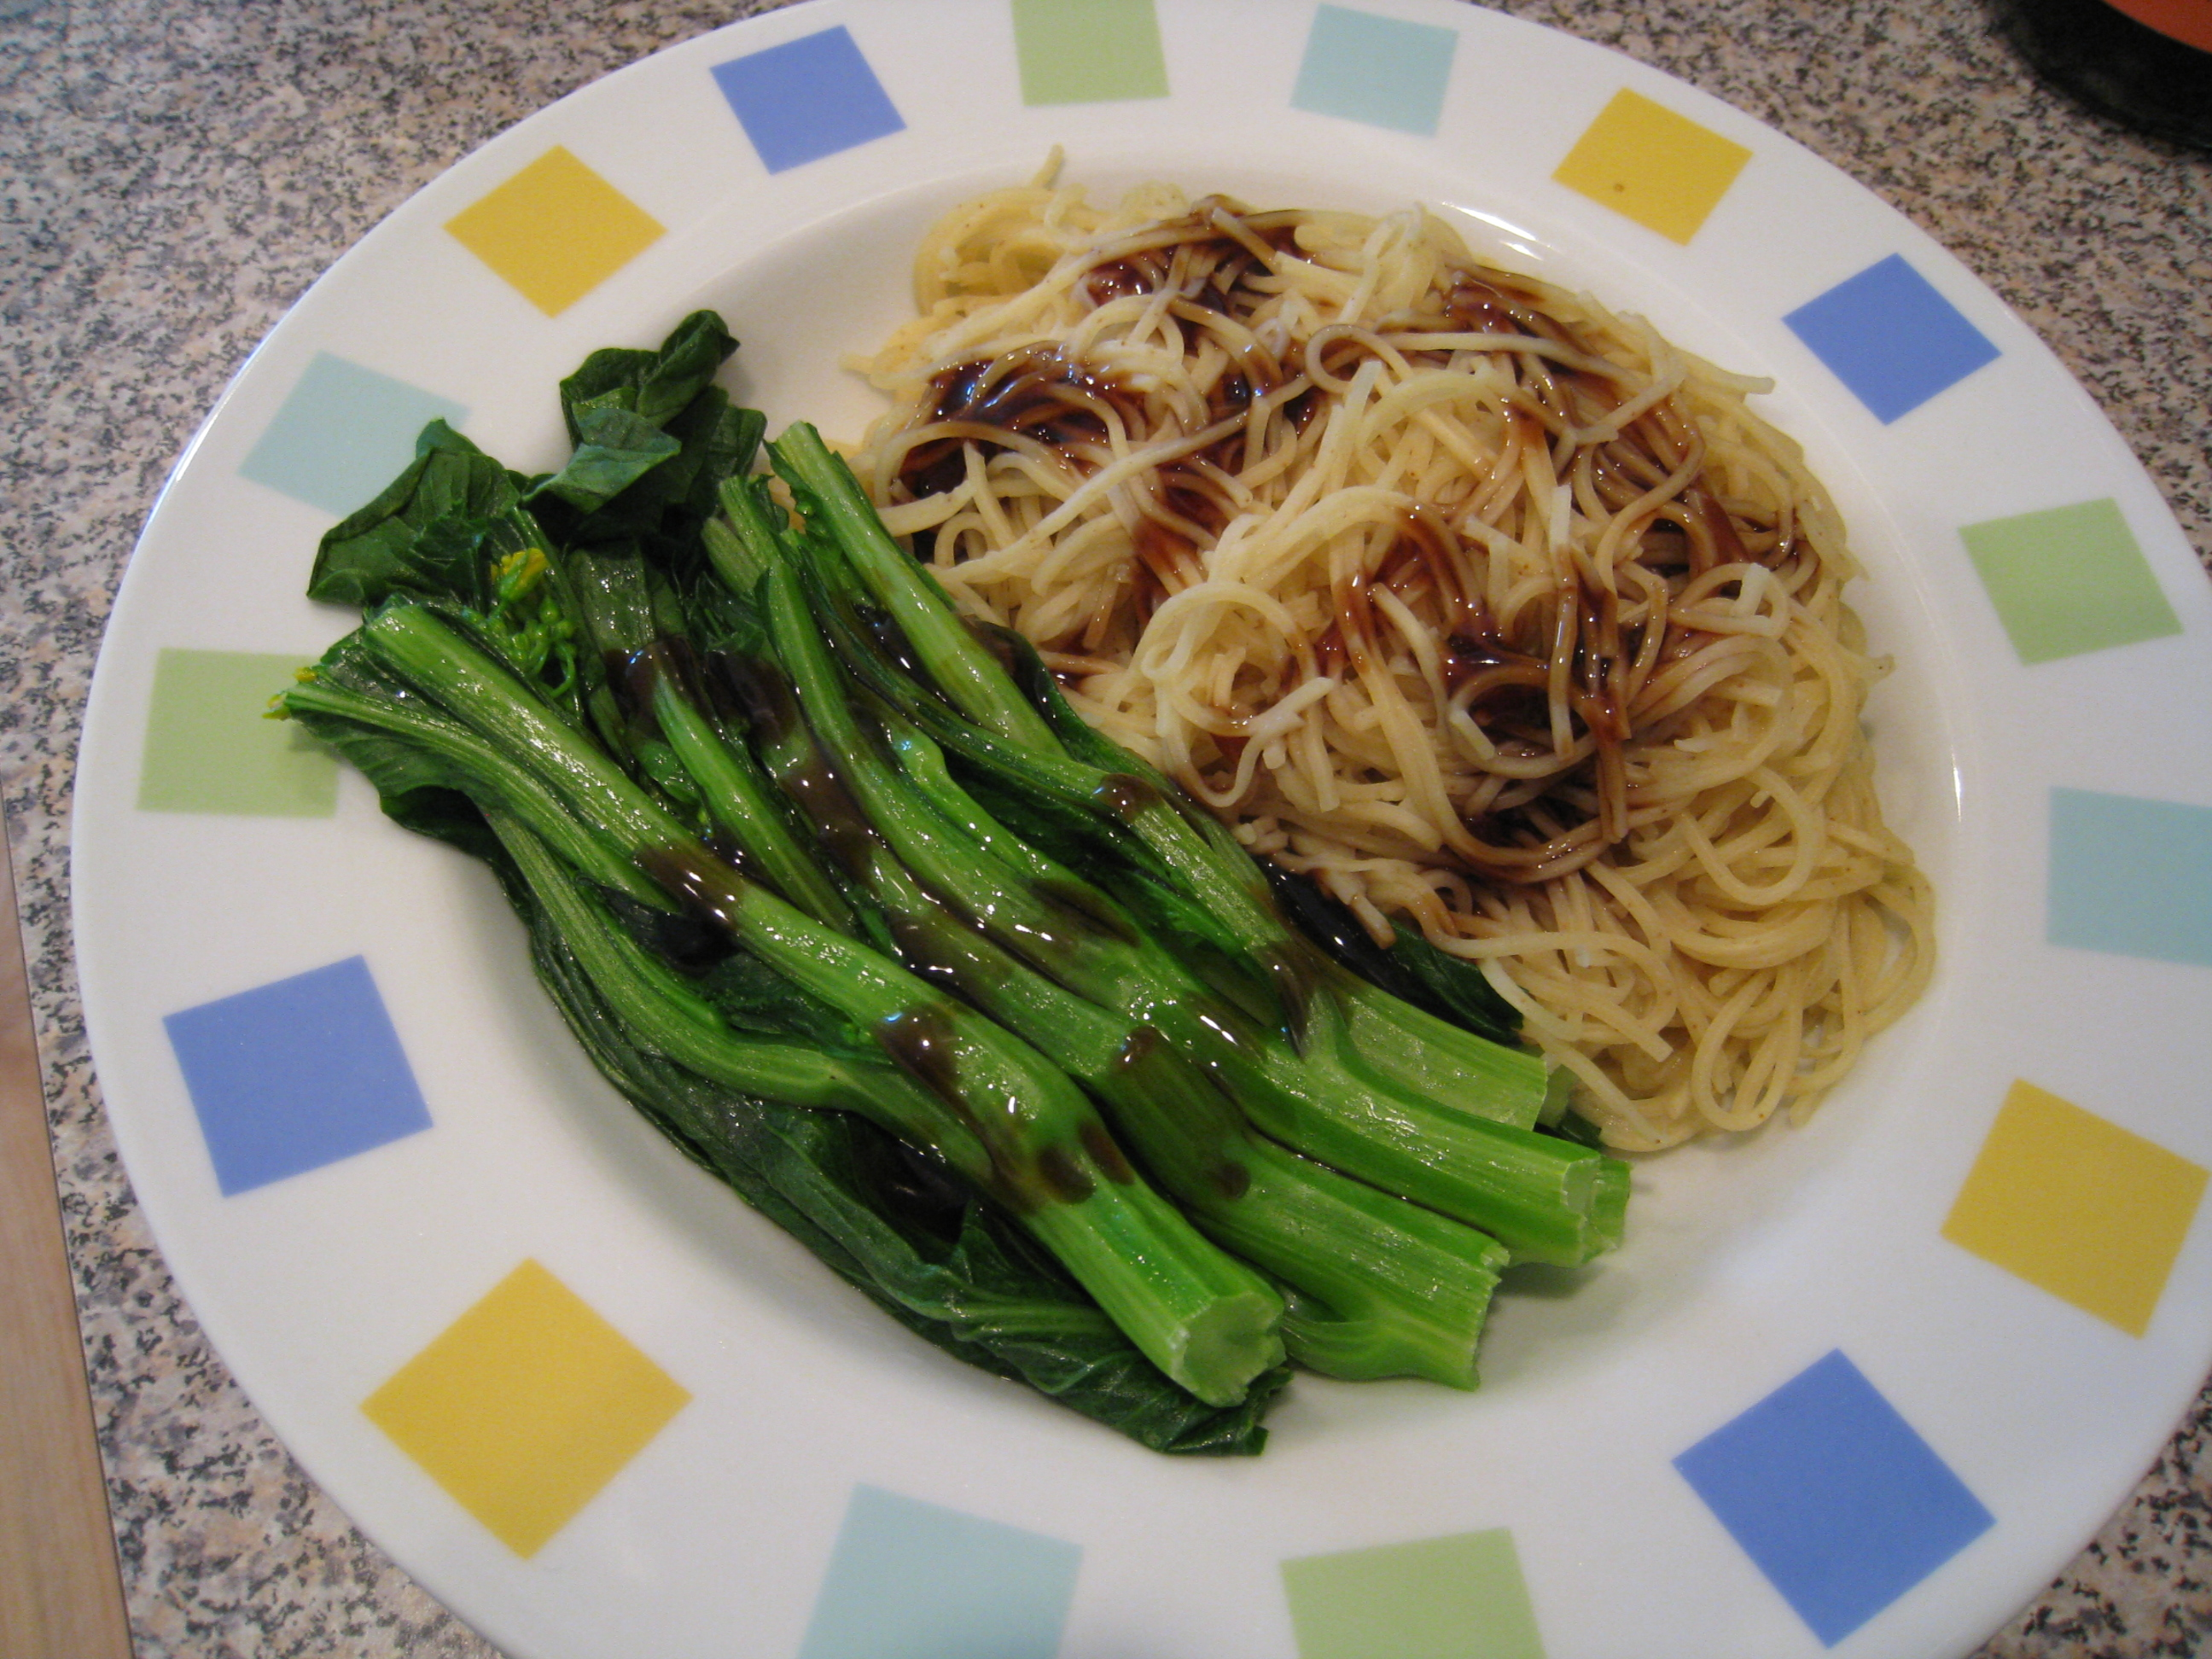 Choy Sum With Oyster Sauce and Noodles - My 300-Calorie Diet